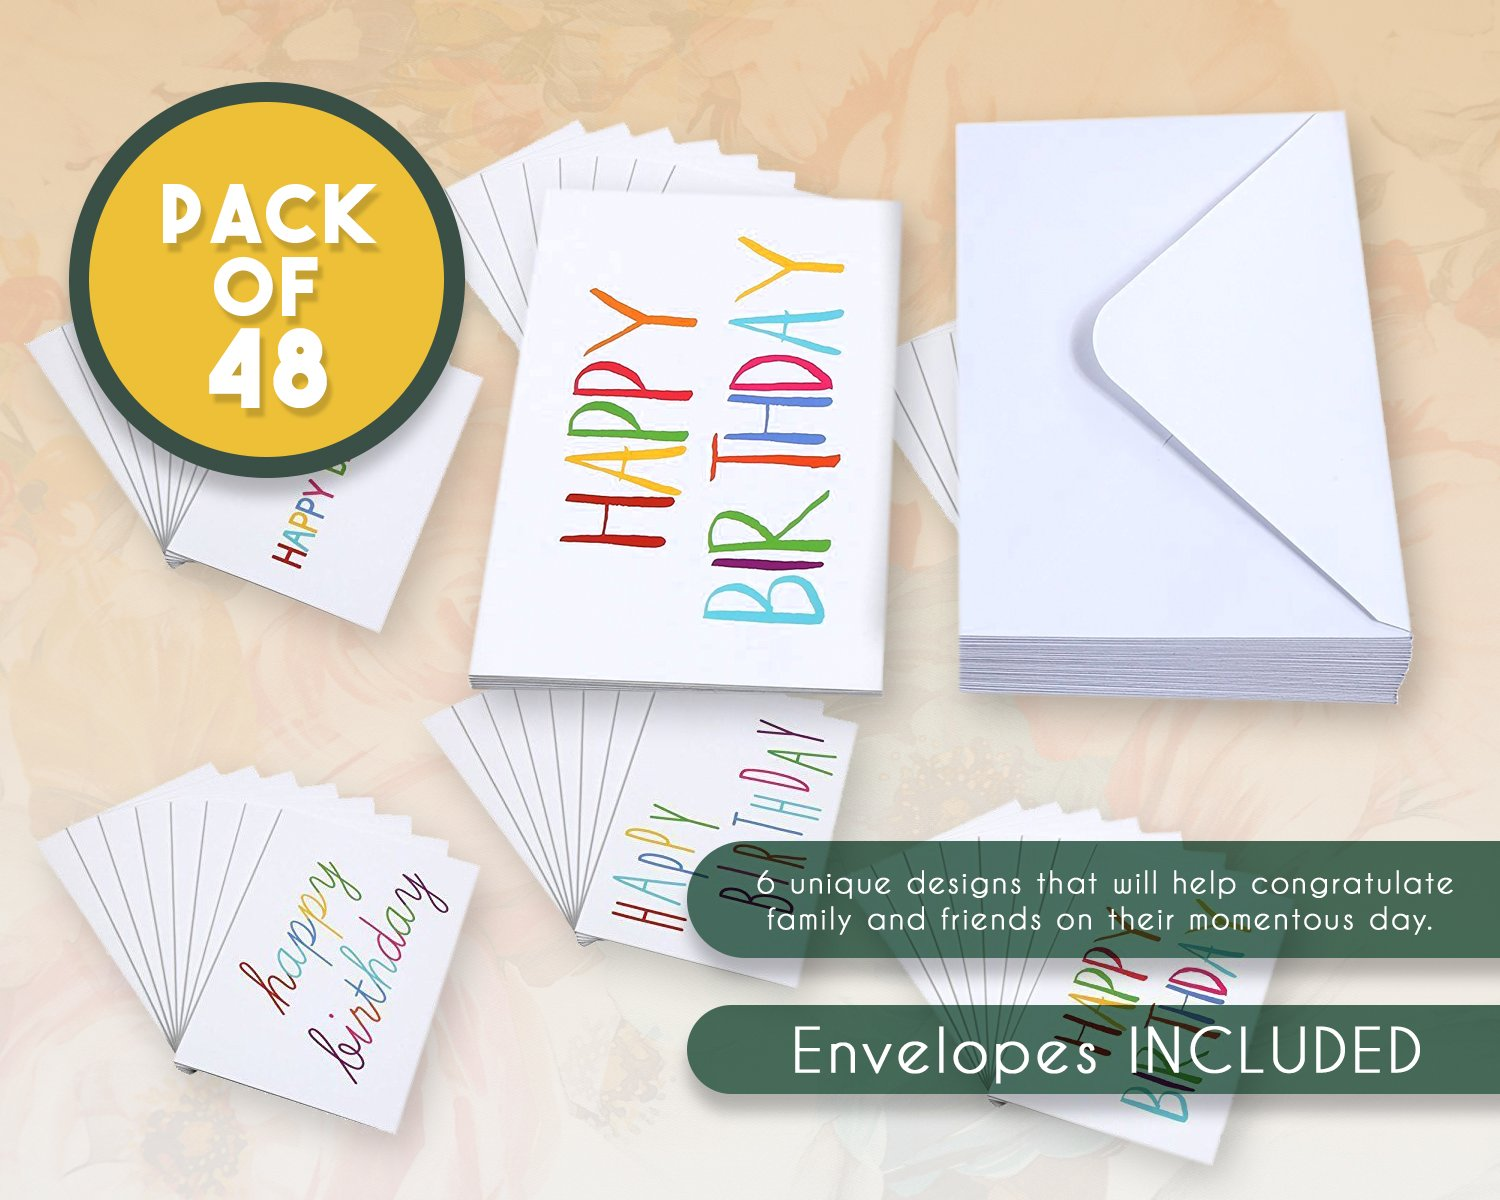 Birthday Cards Bulk 48 Pack Blank Happy Greeting 6 Colorful Rainbow Font Designs Envelopes Included